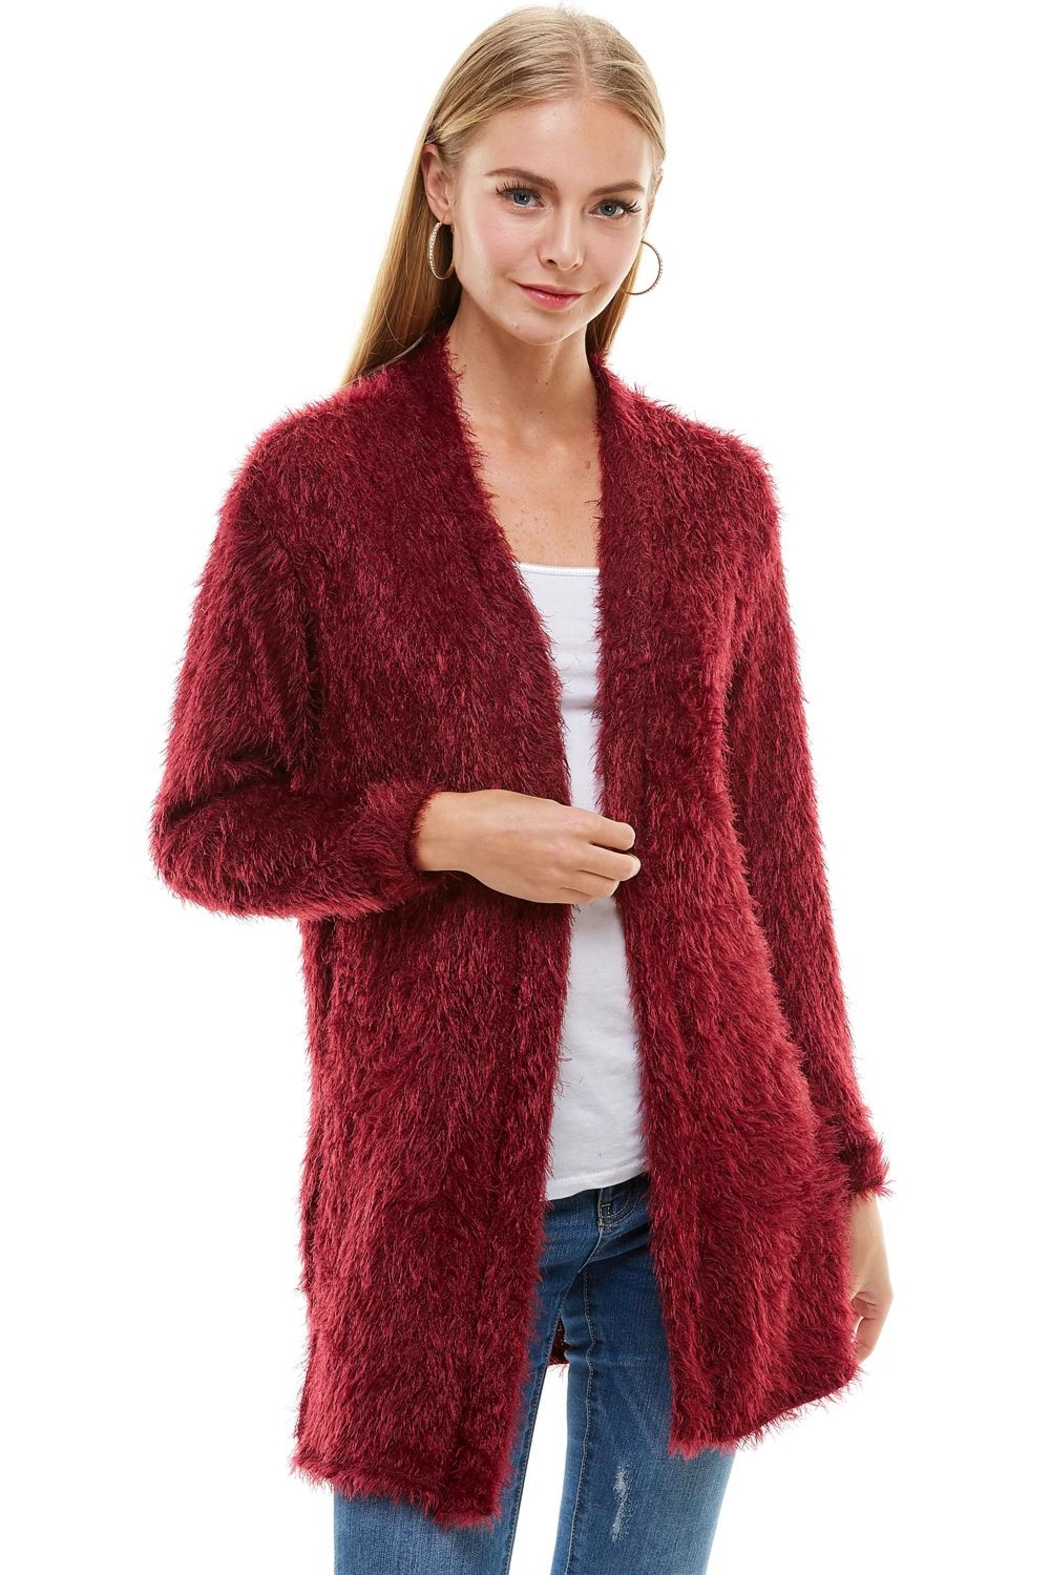 Miley and Molly Shaggy Loose Fit Long Sweater Cardigan - Main Image